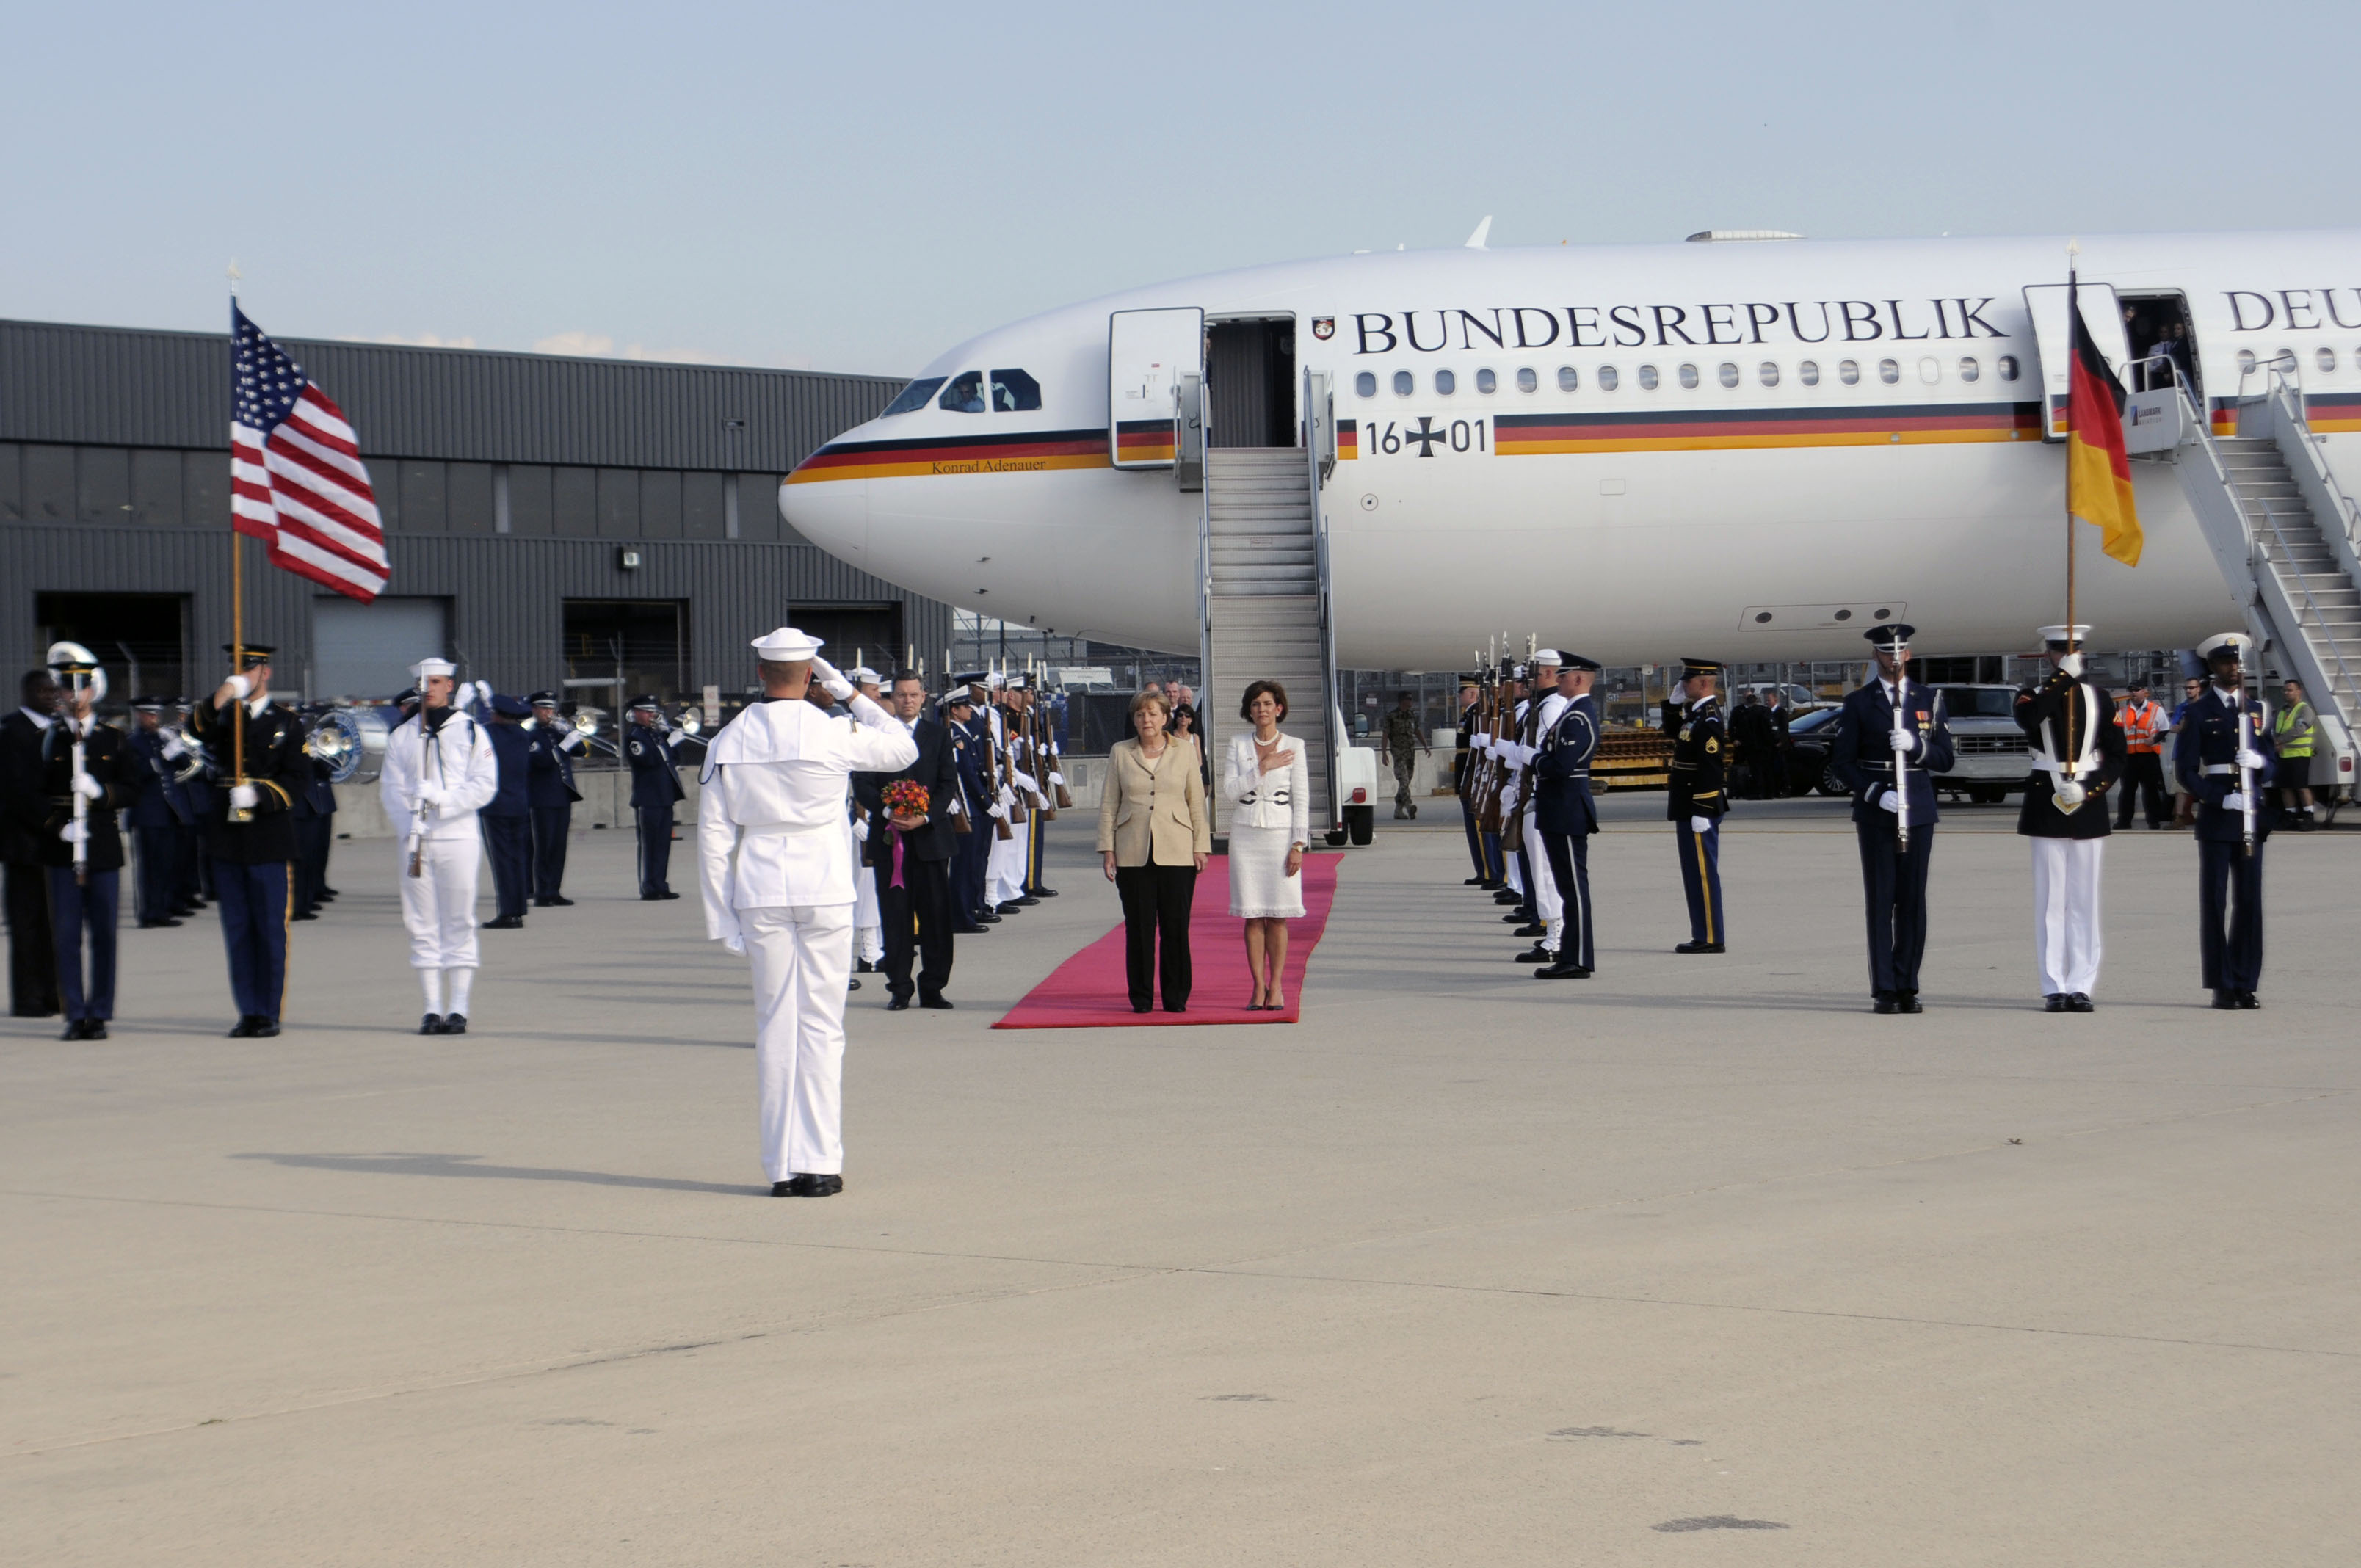 ... Germany, at Dulles International Airport, USA.jpg - Wikimedia Commons